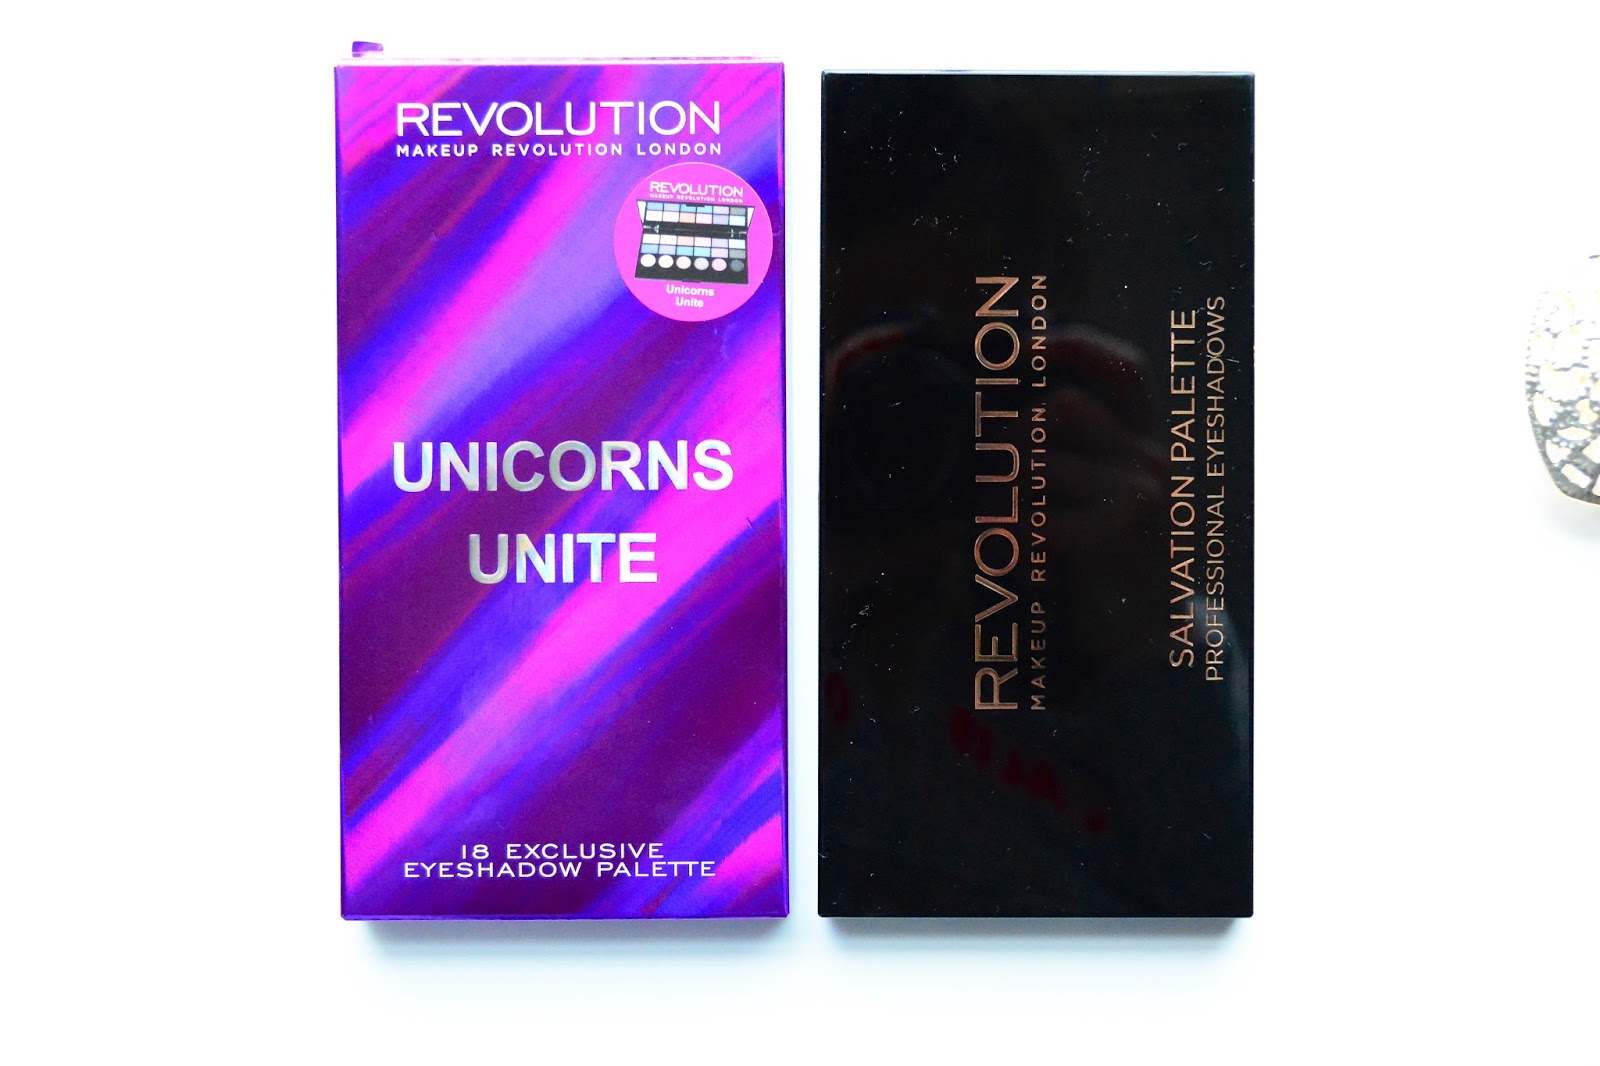 Makeup Revolution Unicorns Unite Palette, Unicorns, Unicorn Makeup, Eyeshadow, Eye Makeup, Makeup Revolution